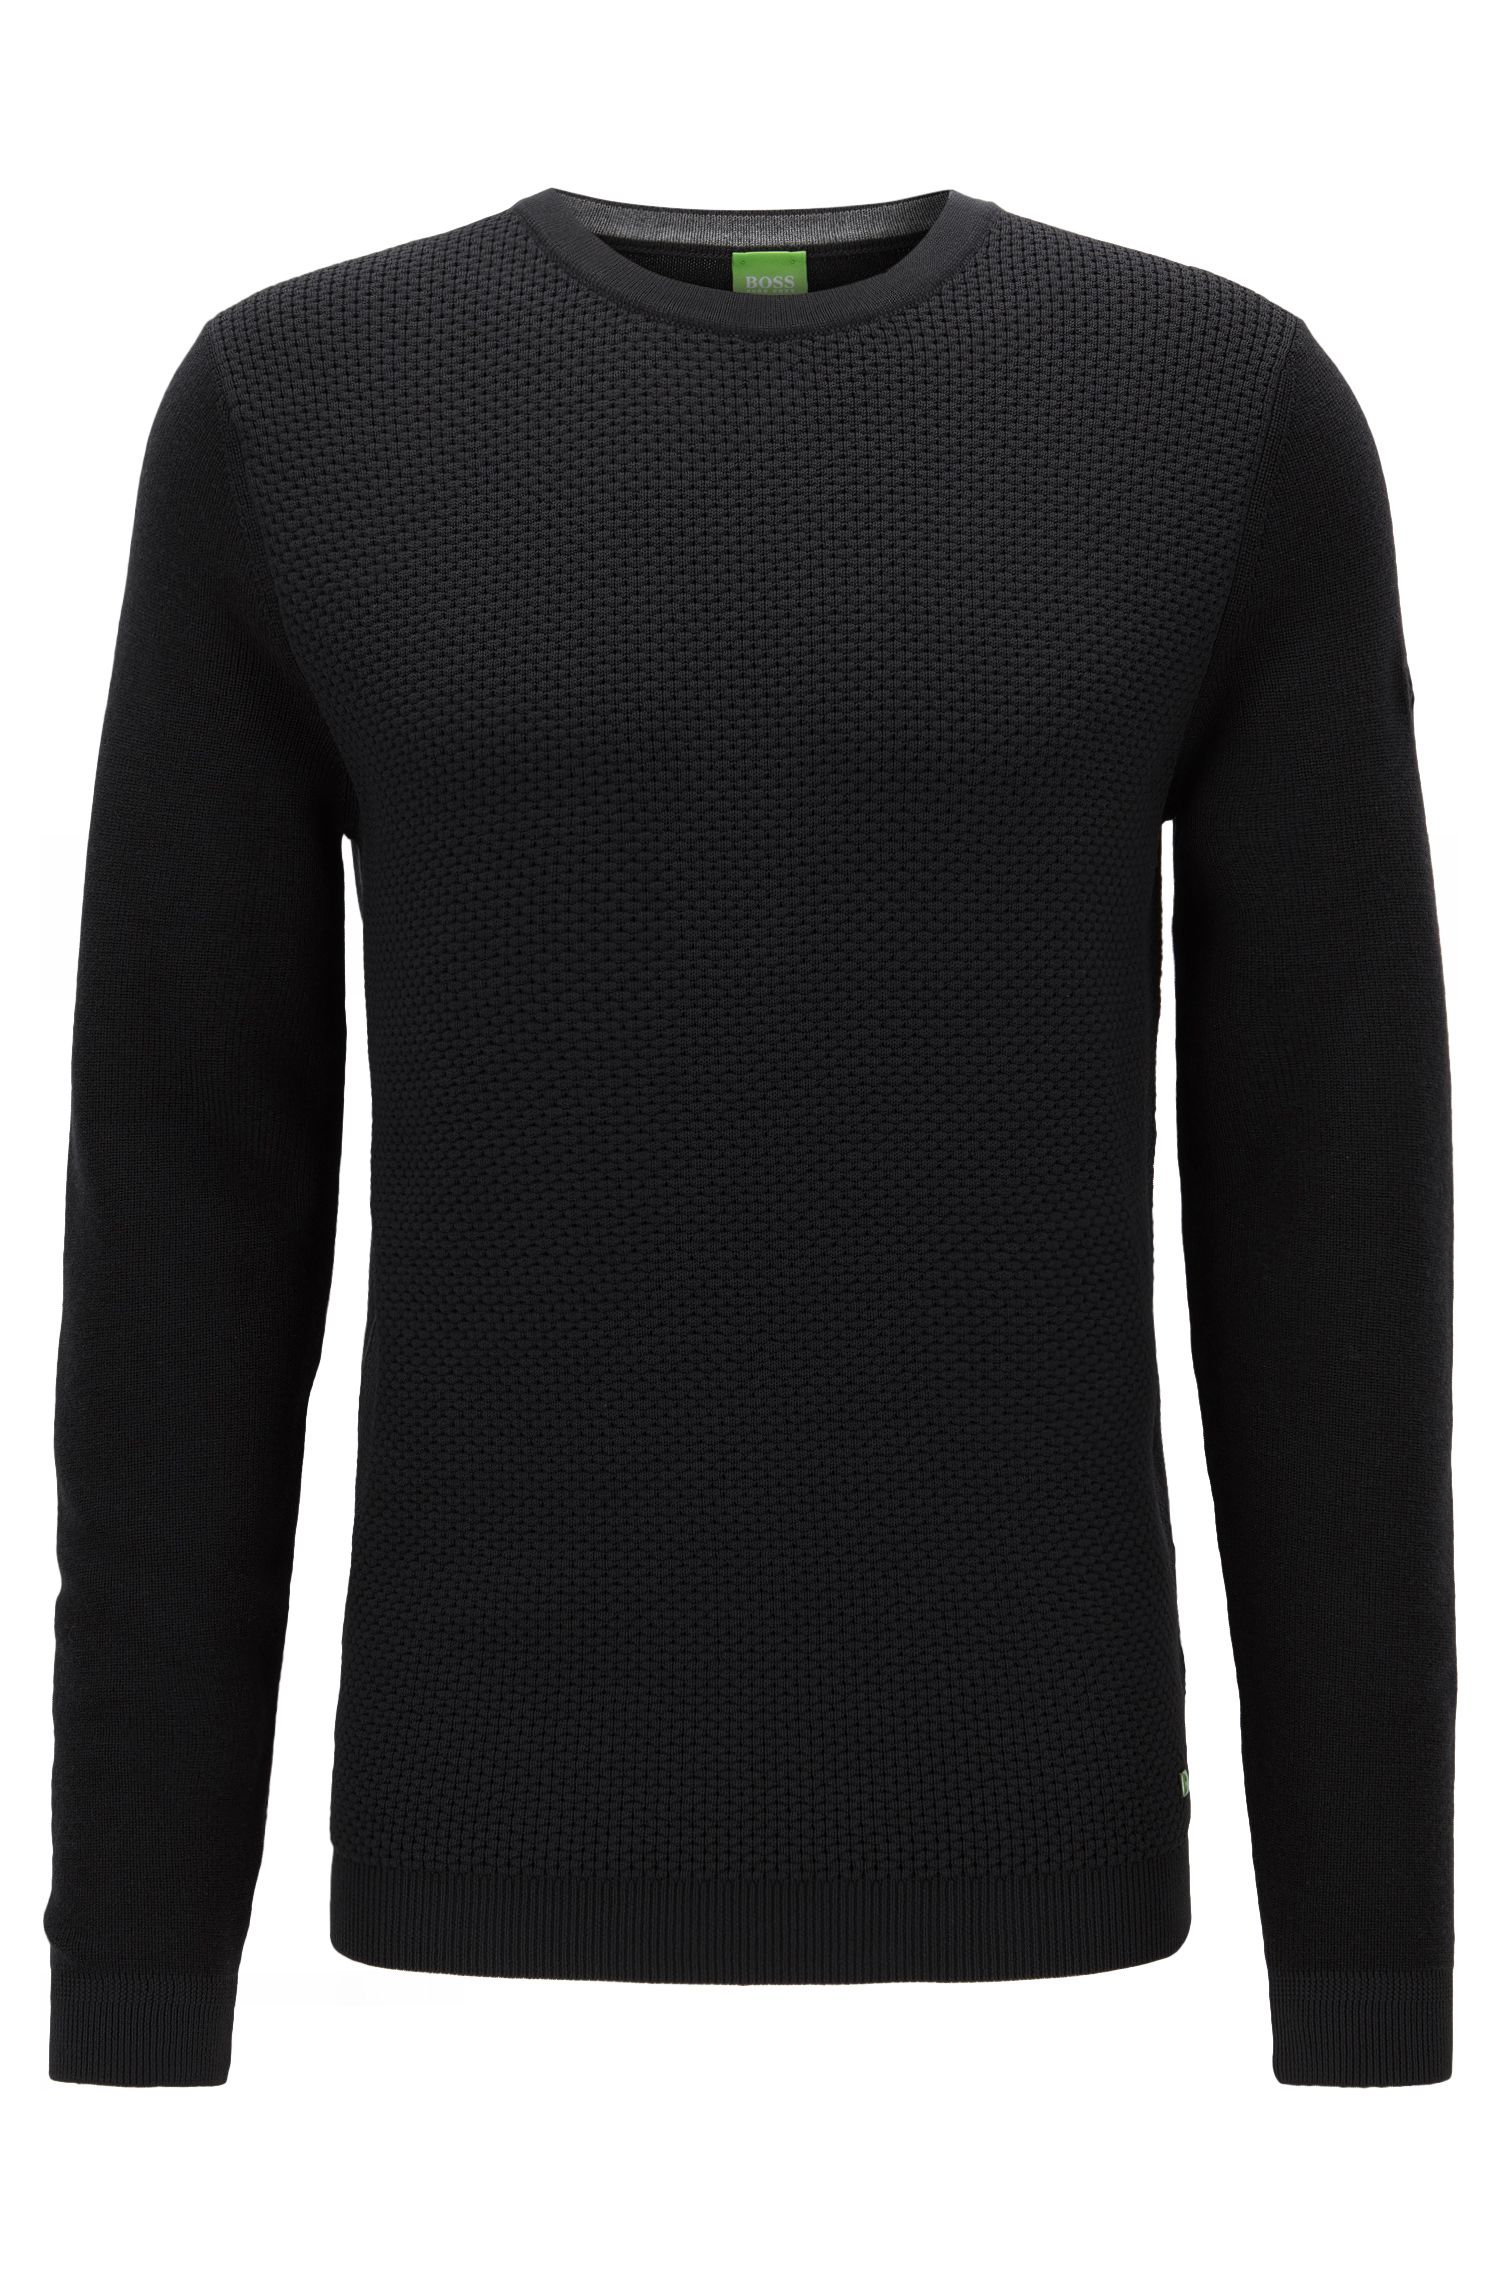 Knit Virgin Wool Sweater | Rance, Black